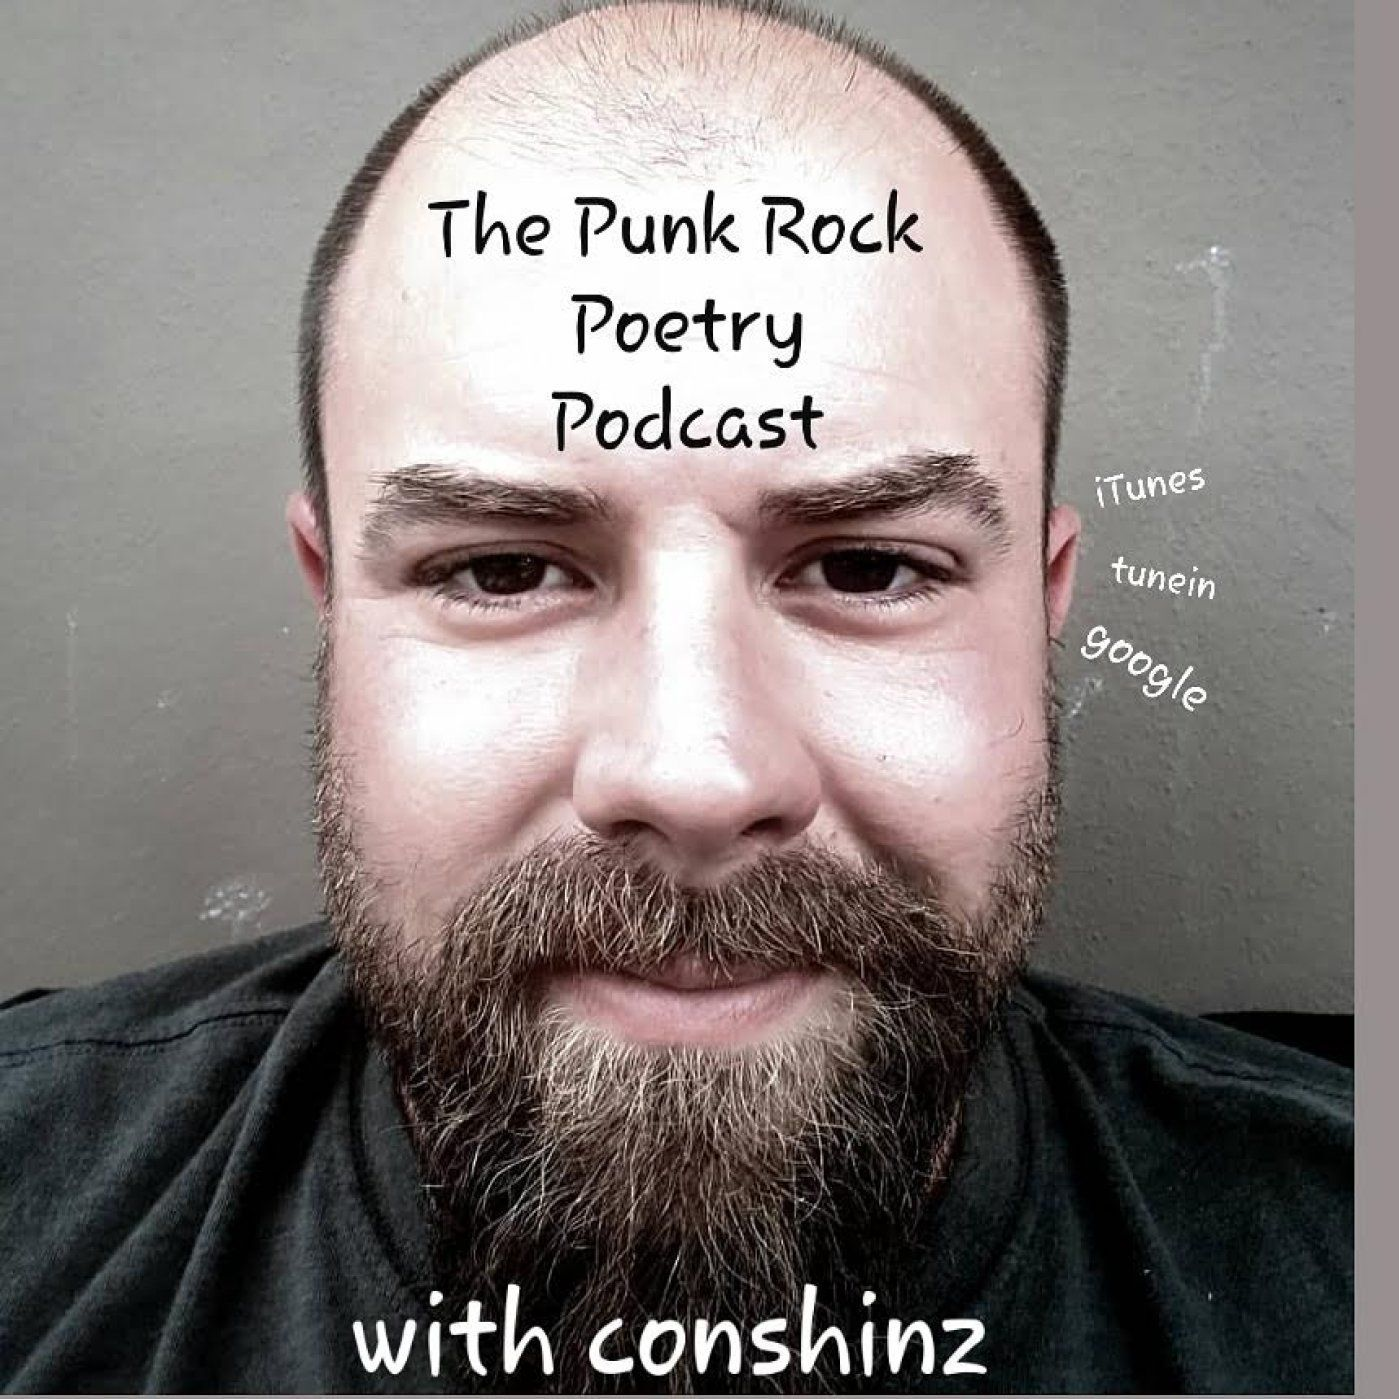 The Punk Rock Poetry Podcast - Sept 28 2019